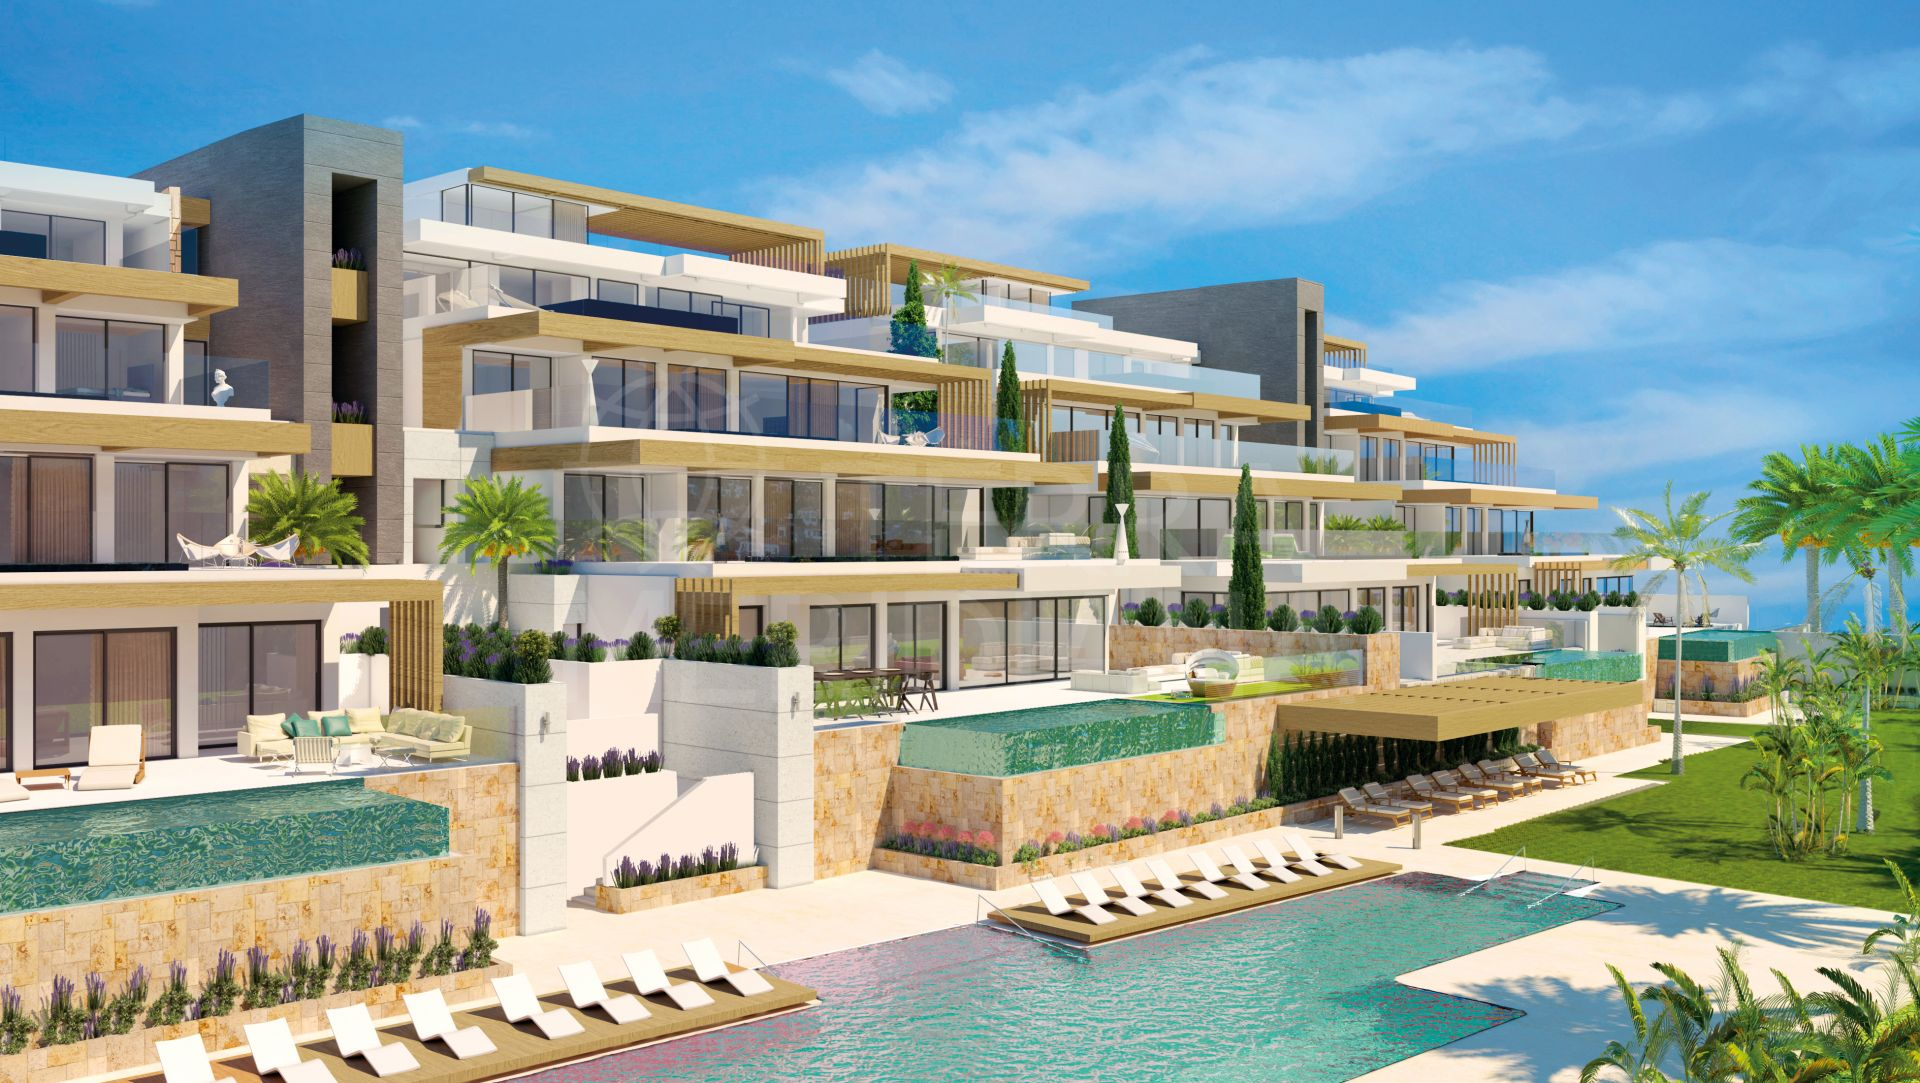 Infinity Mirador del Paraiso, Estepona - Fabulous new development of luxury apartments with private pools and sea views in El Paraiso, Benahavis